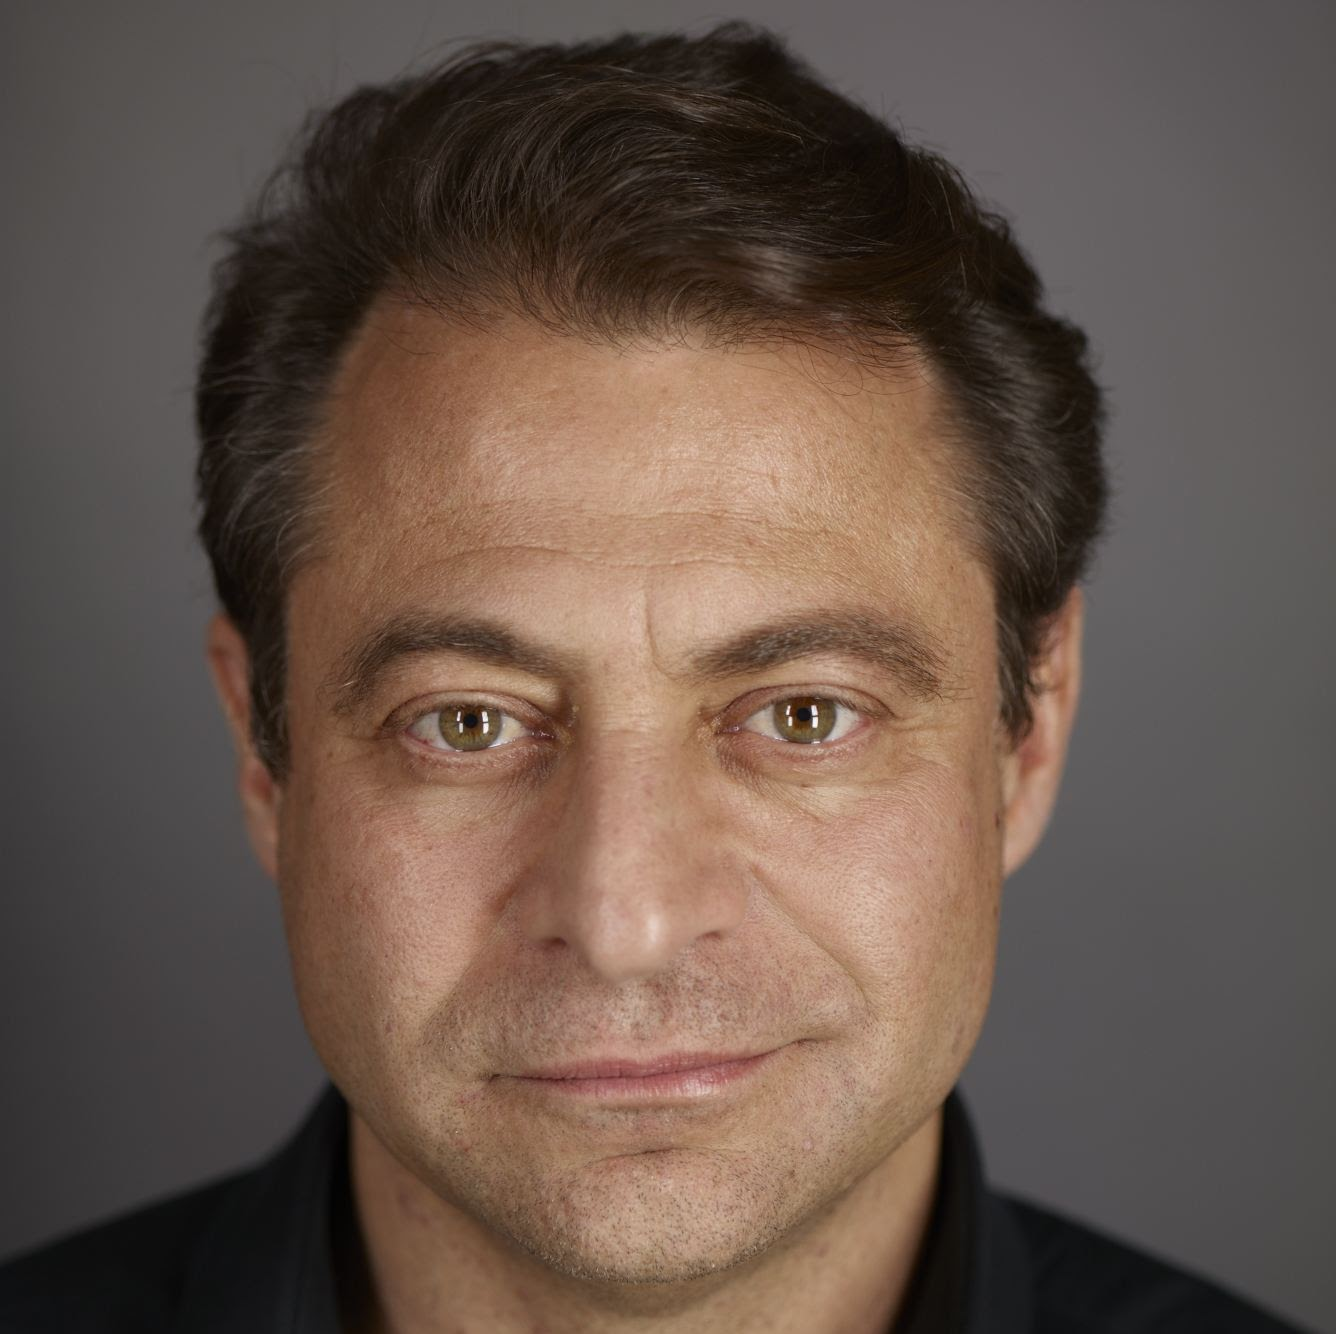 Prioritize SIGNIFICANCE OVER SUCCESS, Peter Diamandis